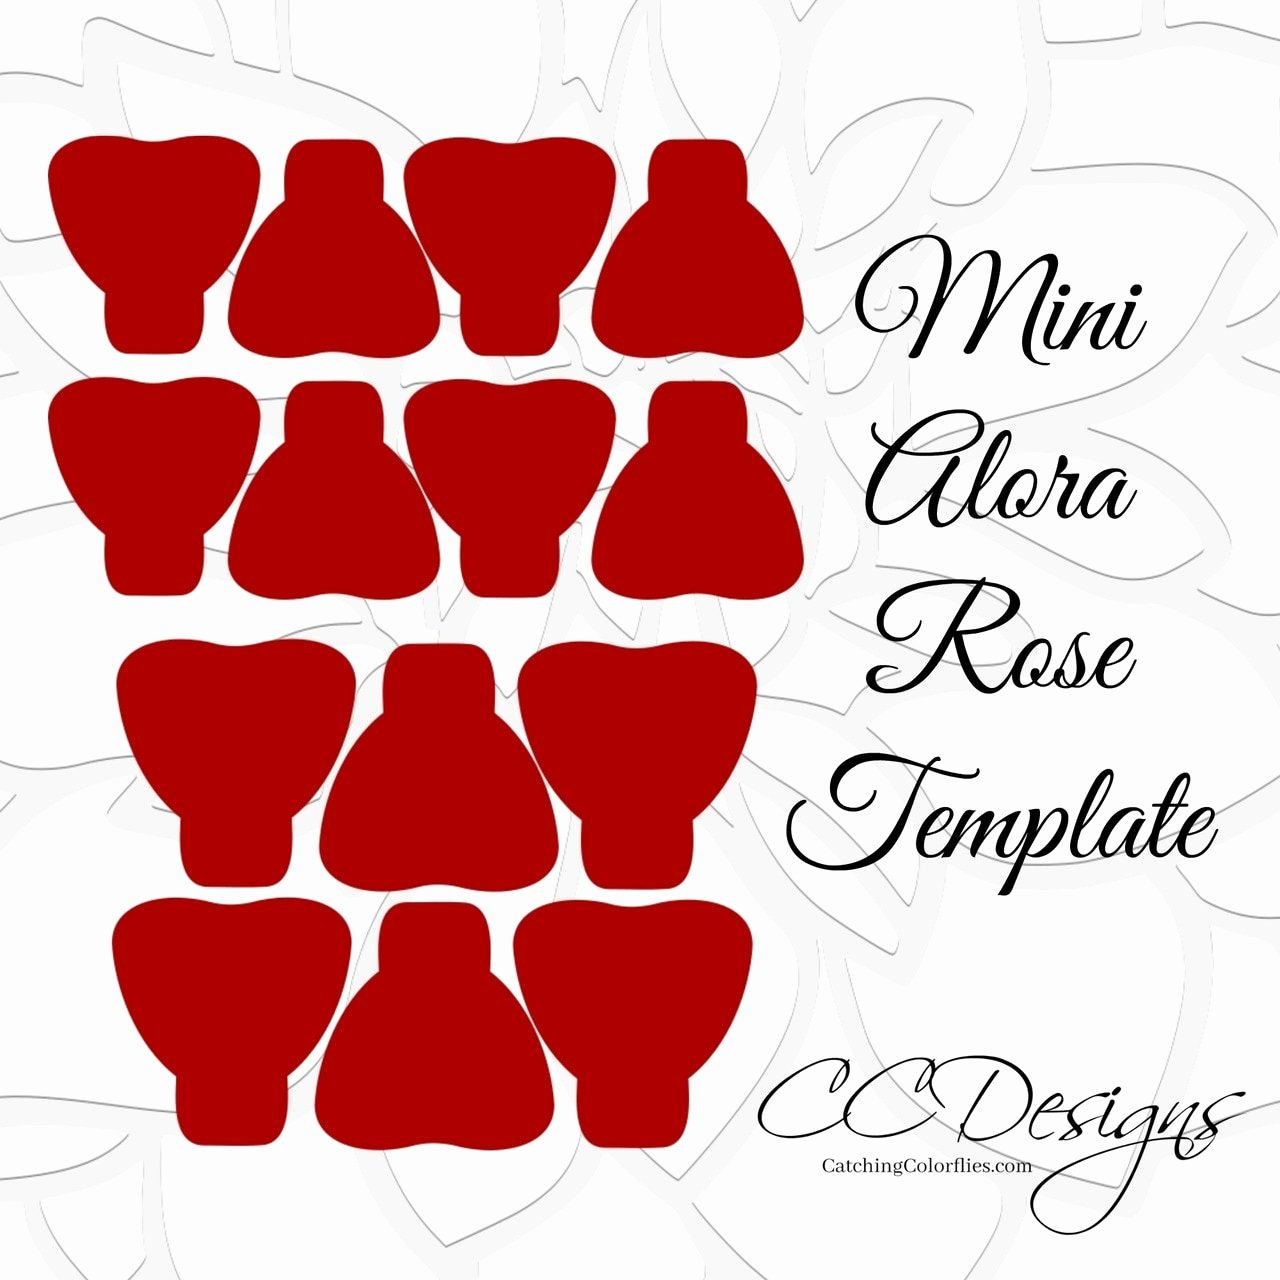 Small Paper Flower Templates Lovely Mini Alora Rose Small Paper Flower Rose Template